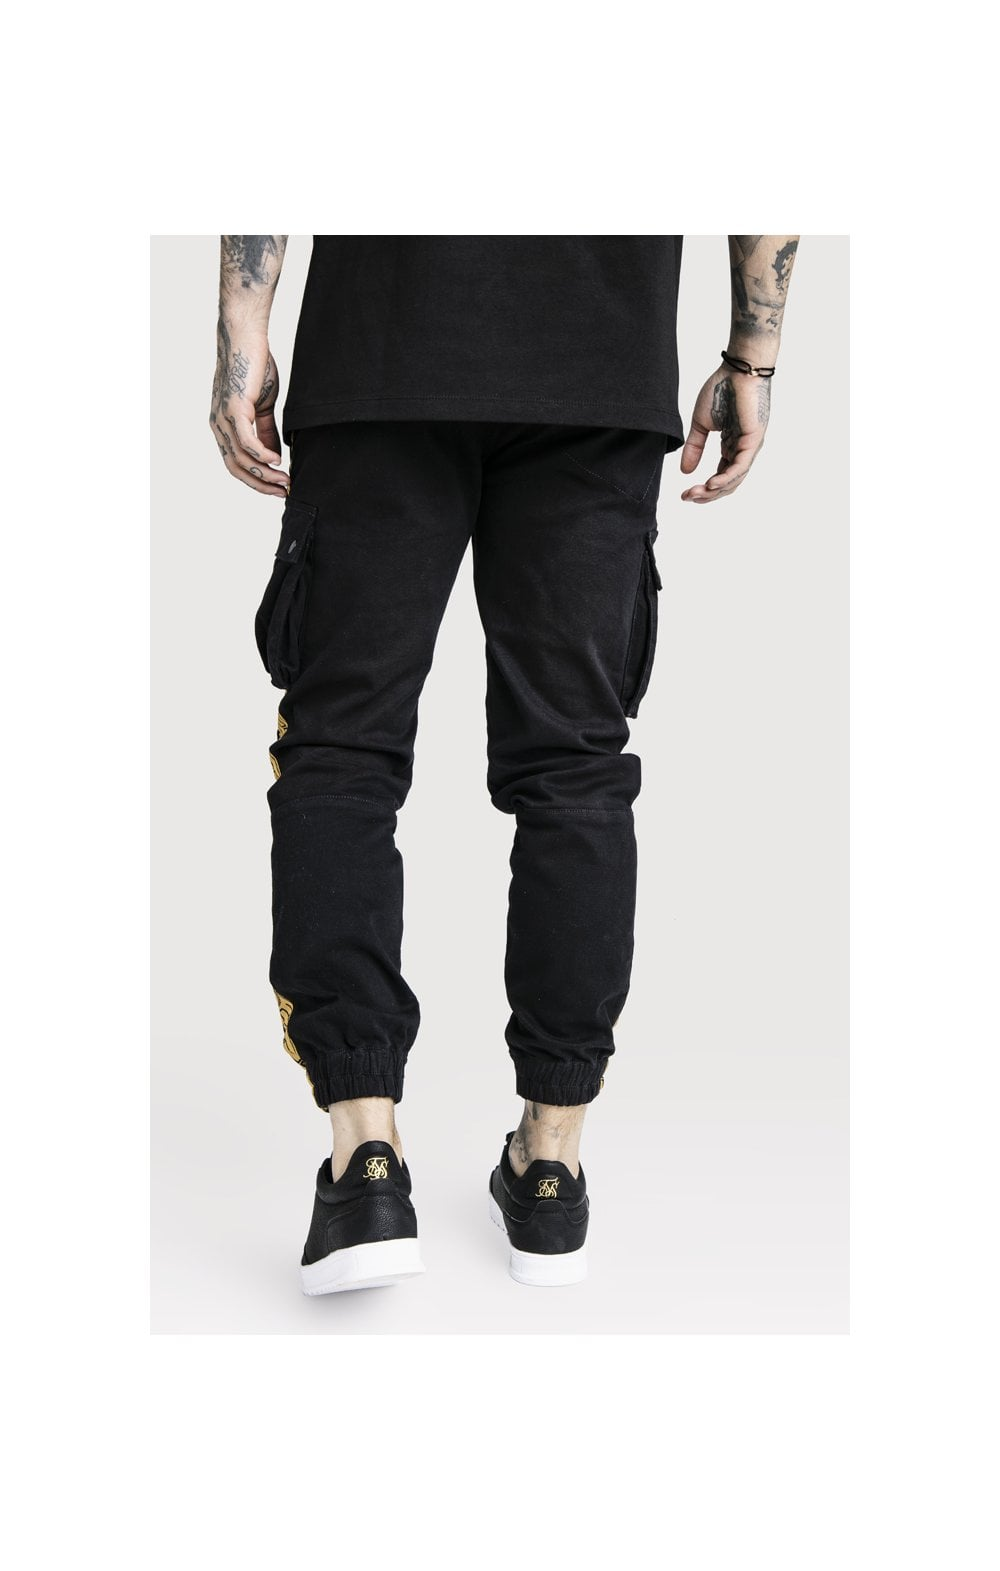 Load image into Gallery viewer, SikSilk x Dani Alves Cargo Pants - Black (4)